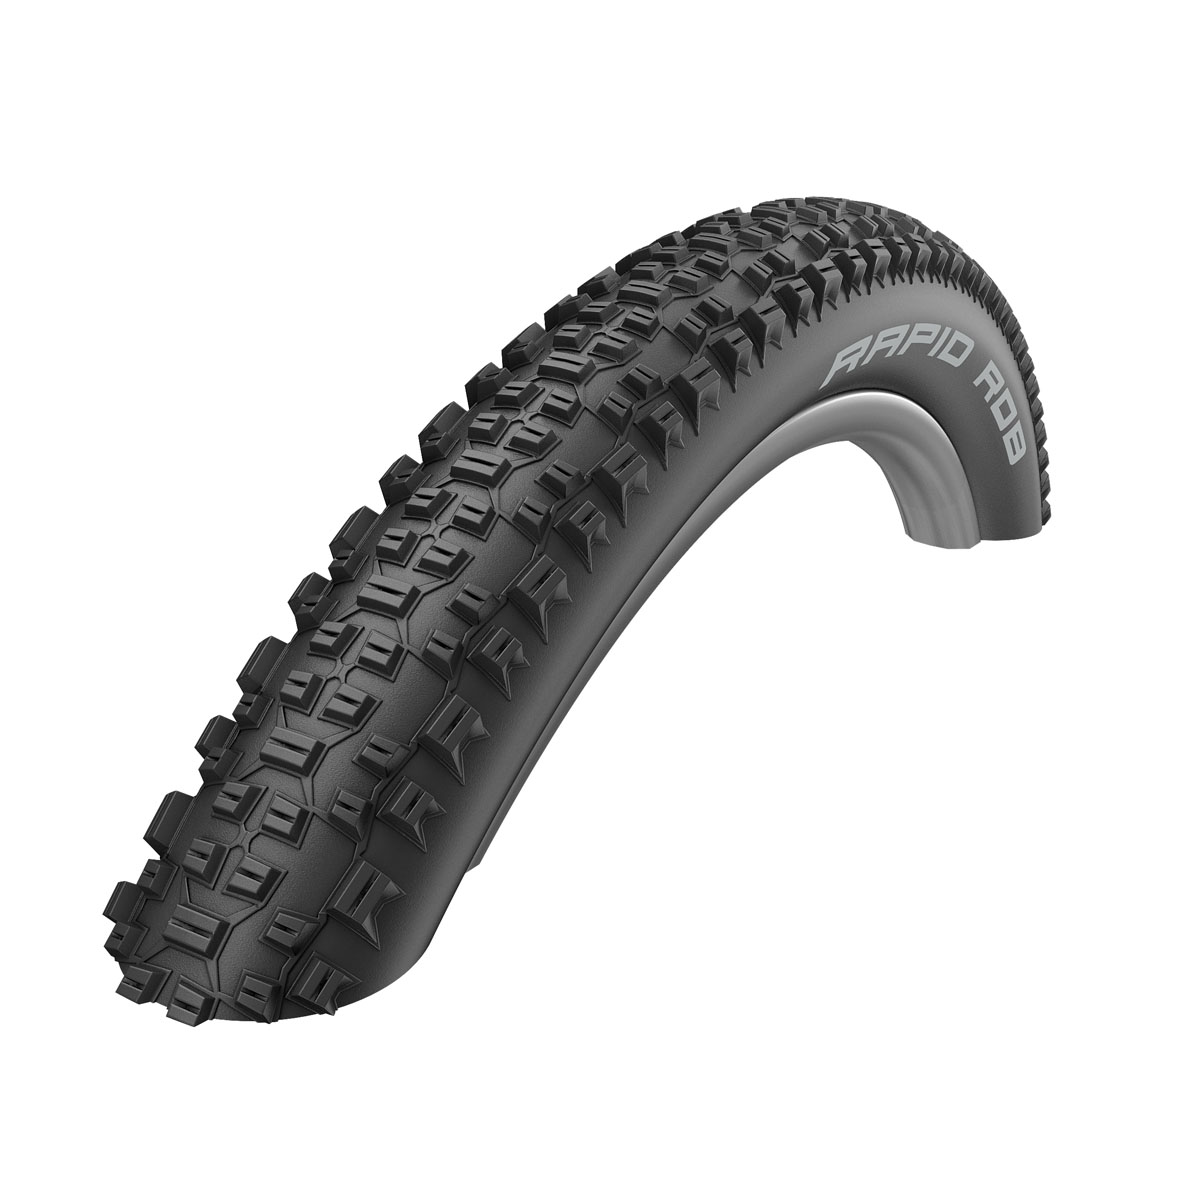 Schwalbe Rapid Rob HS 425 Mountain Bicycle Tire - Wire Bead (Black - 29x2.25)